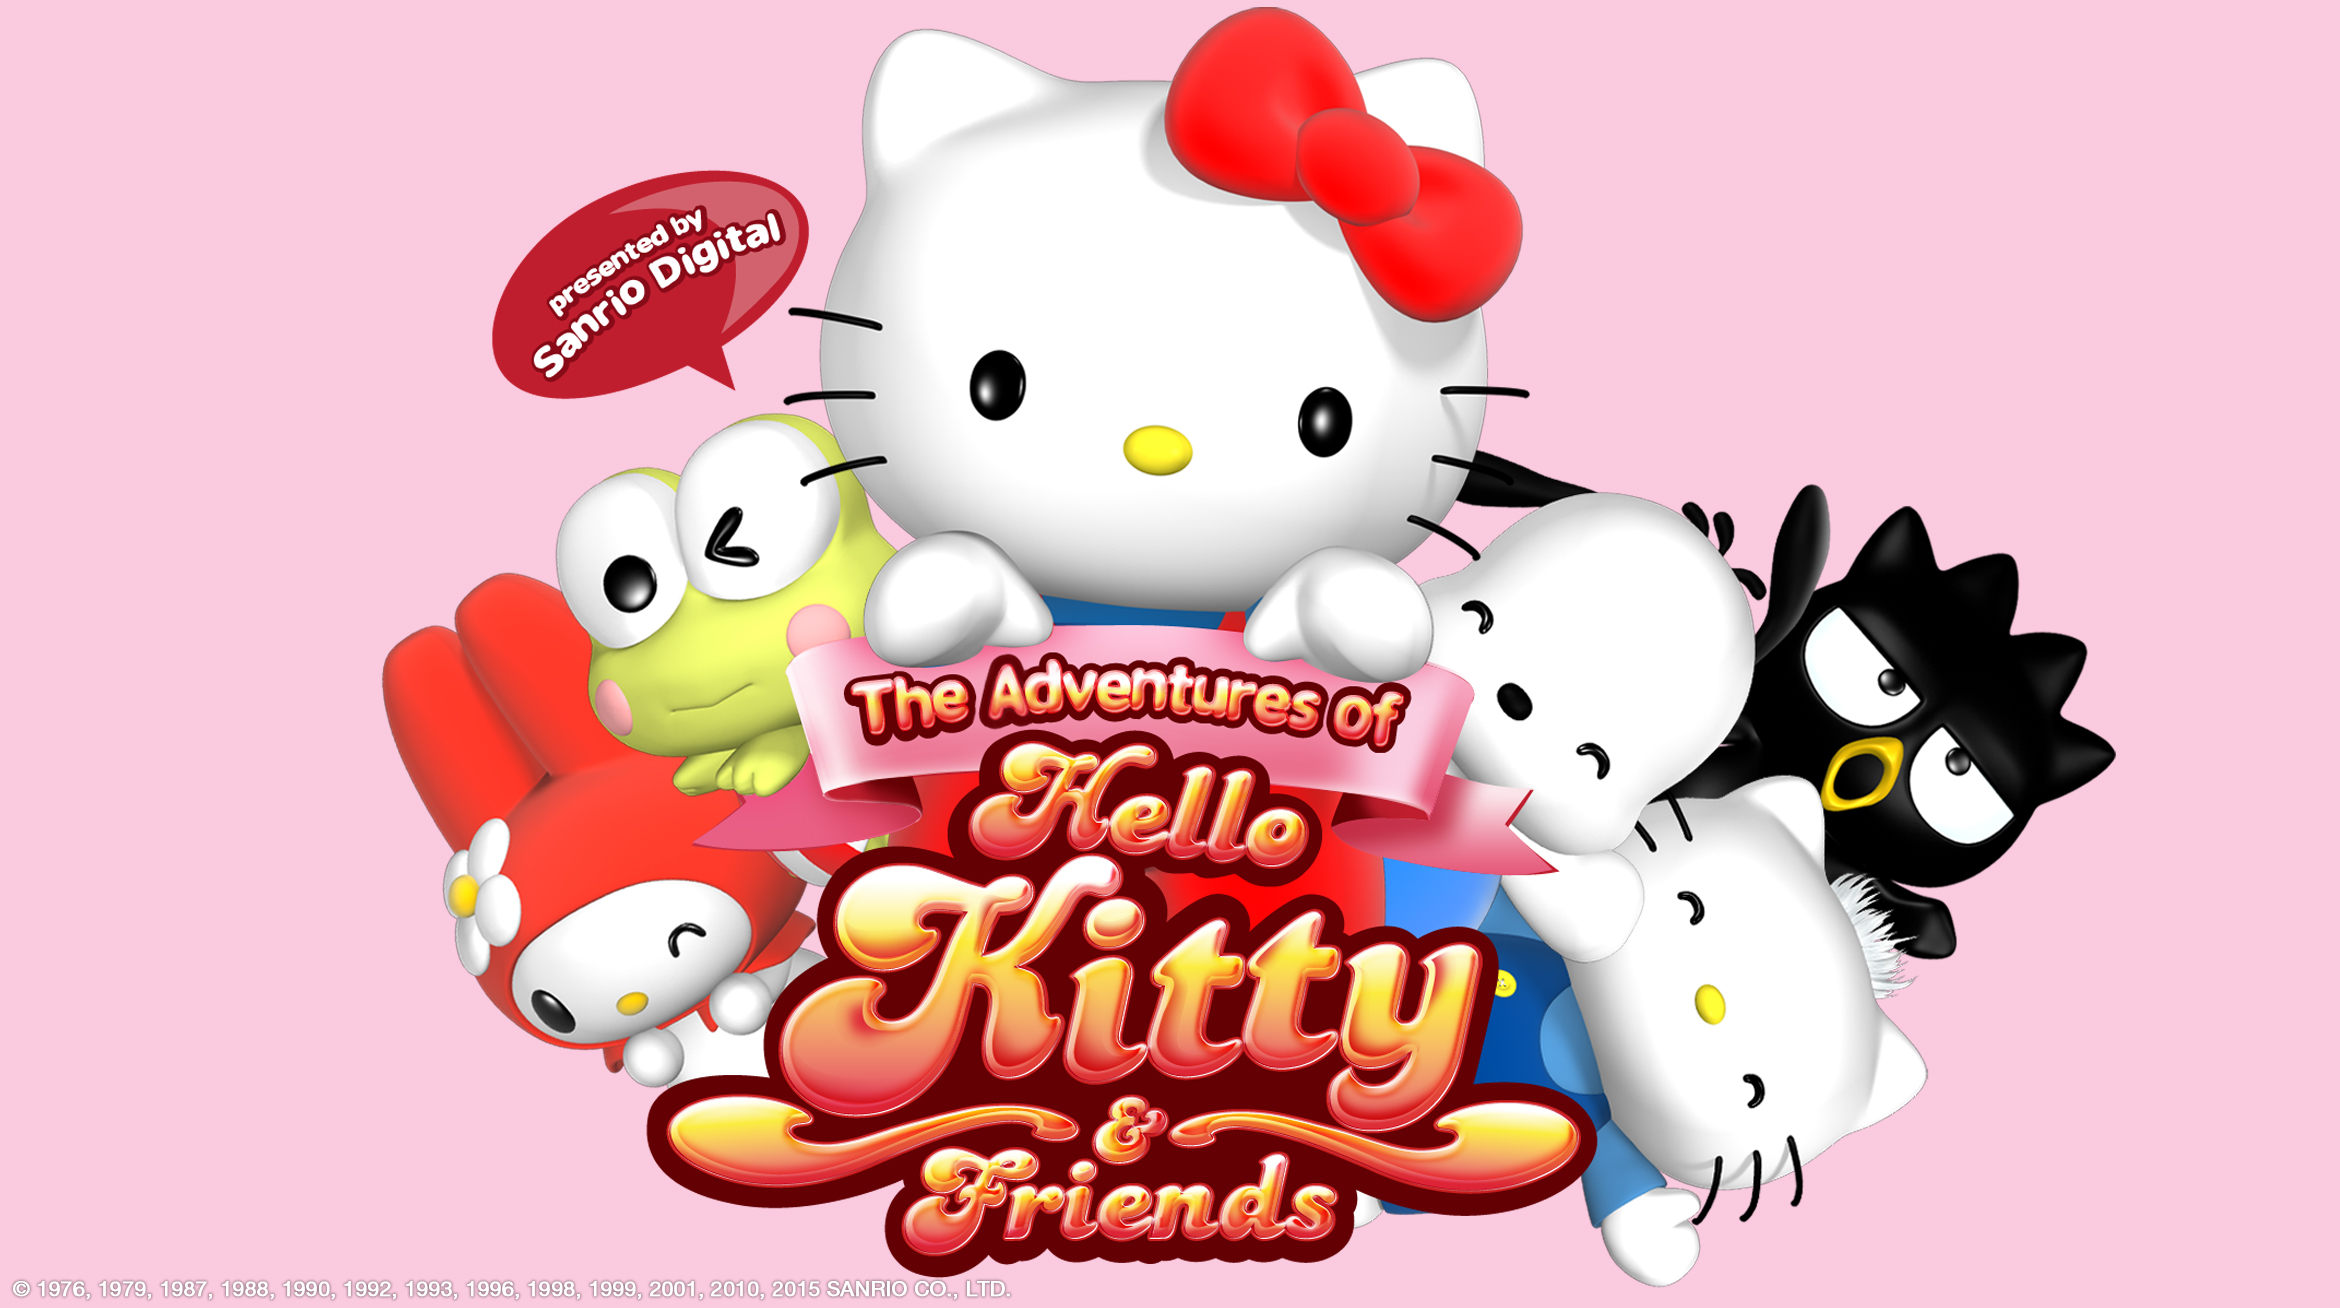 The Adventures of Hello Kitty and